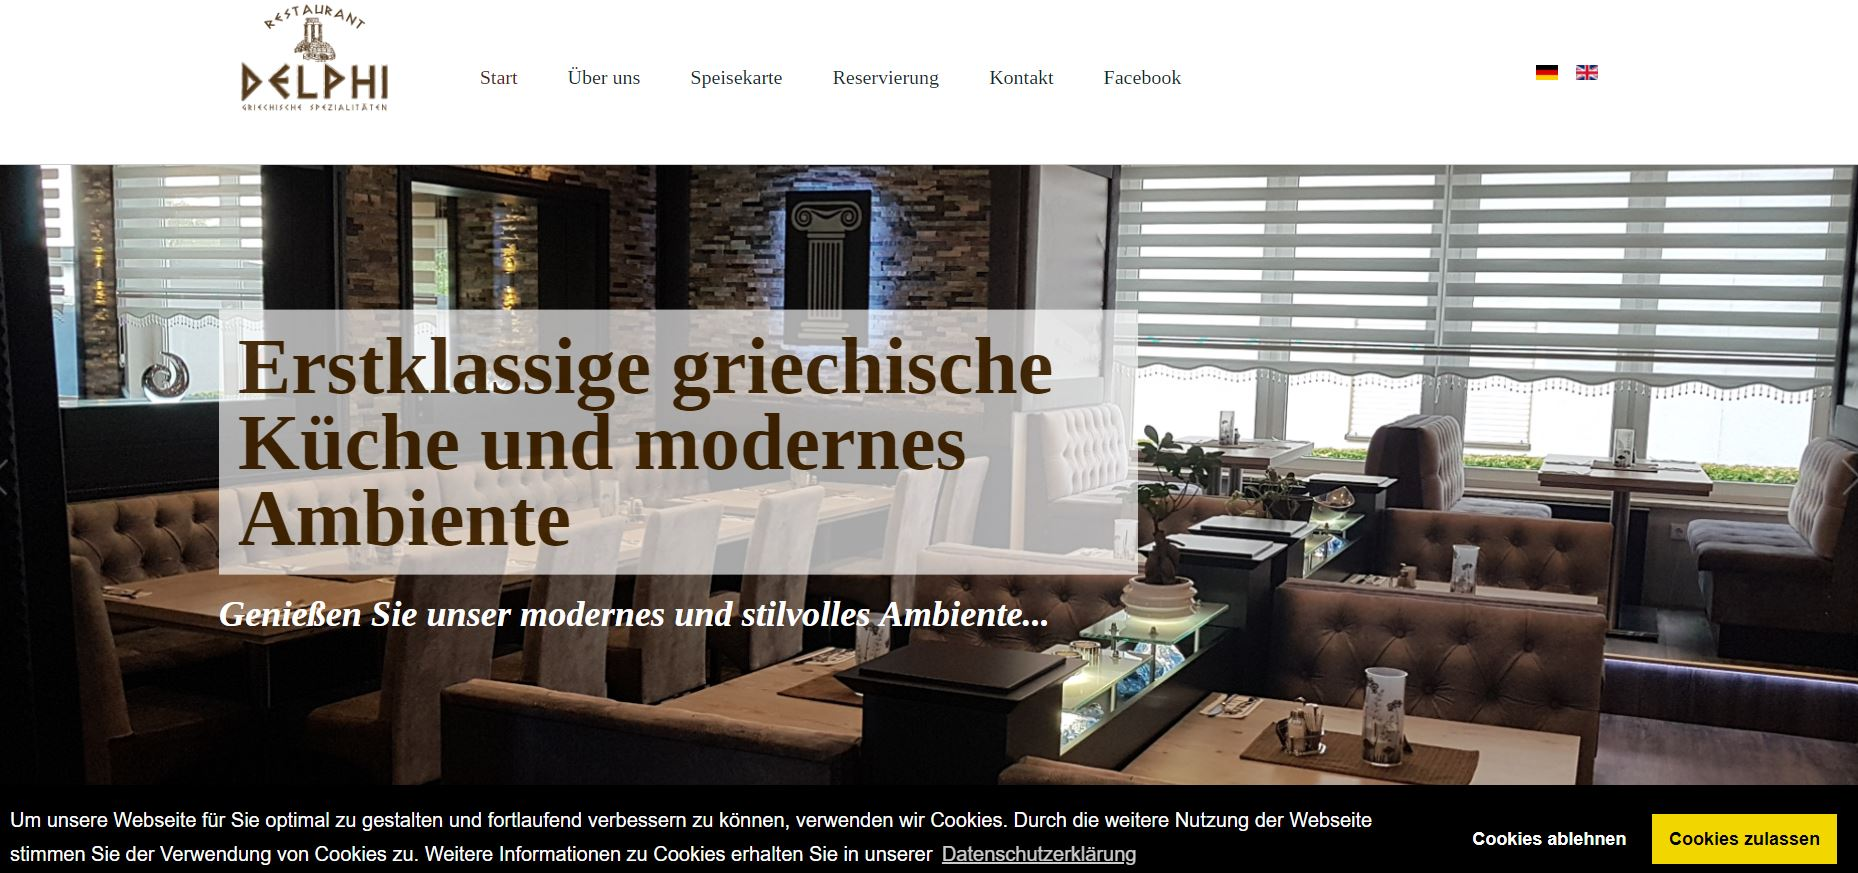 Restaurant Website - griechisches Restaurant